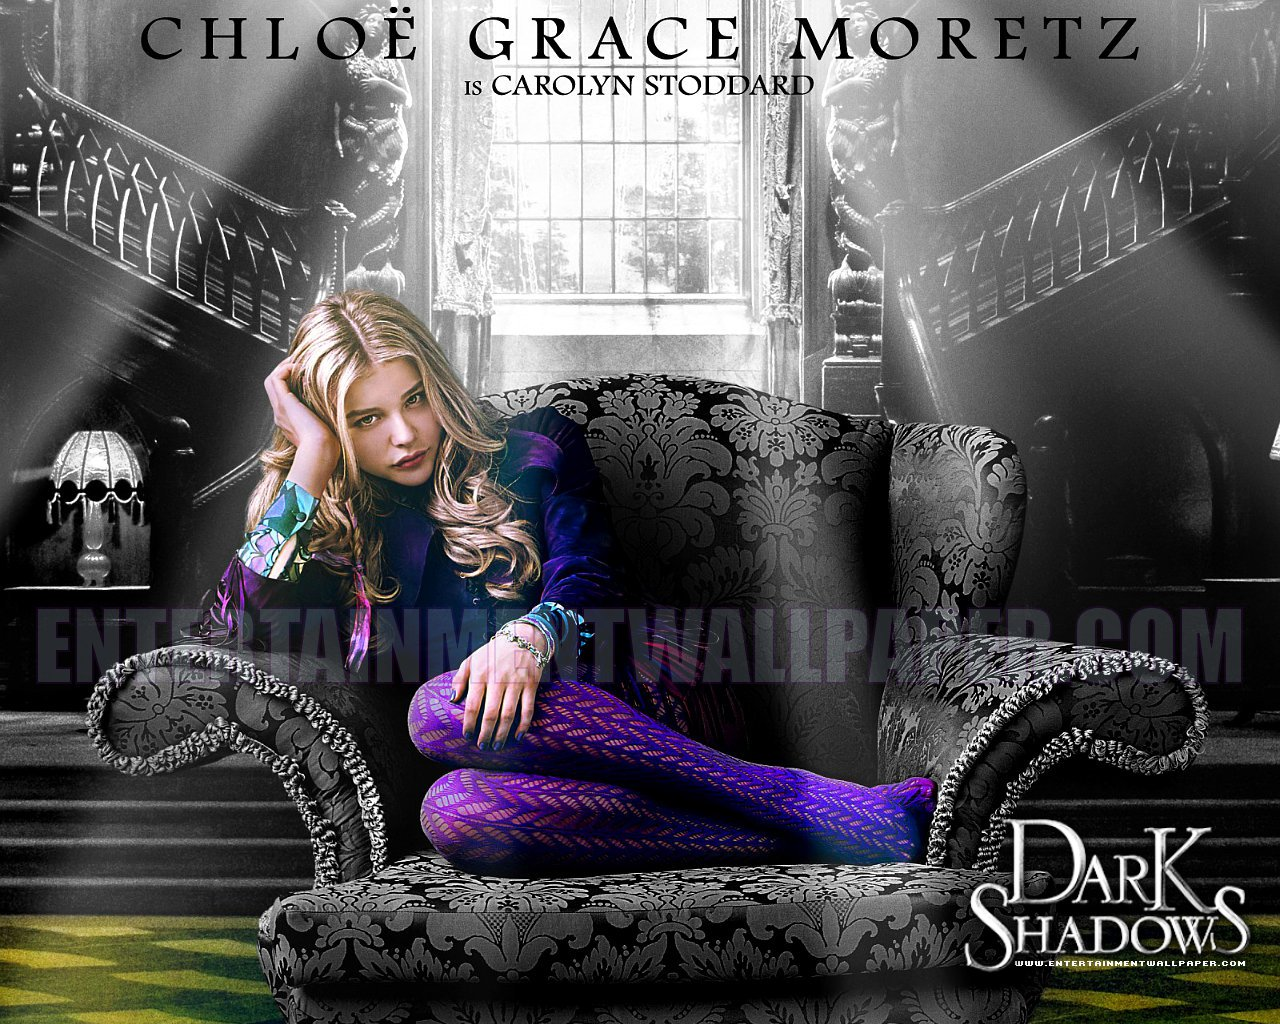 tv show dark shadows wallpaper 10031793 size 1280x1024 more dark 1280x1024